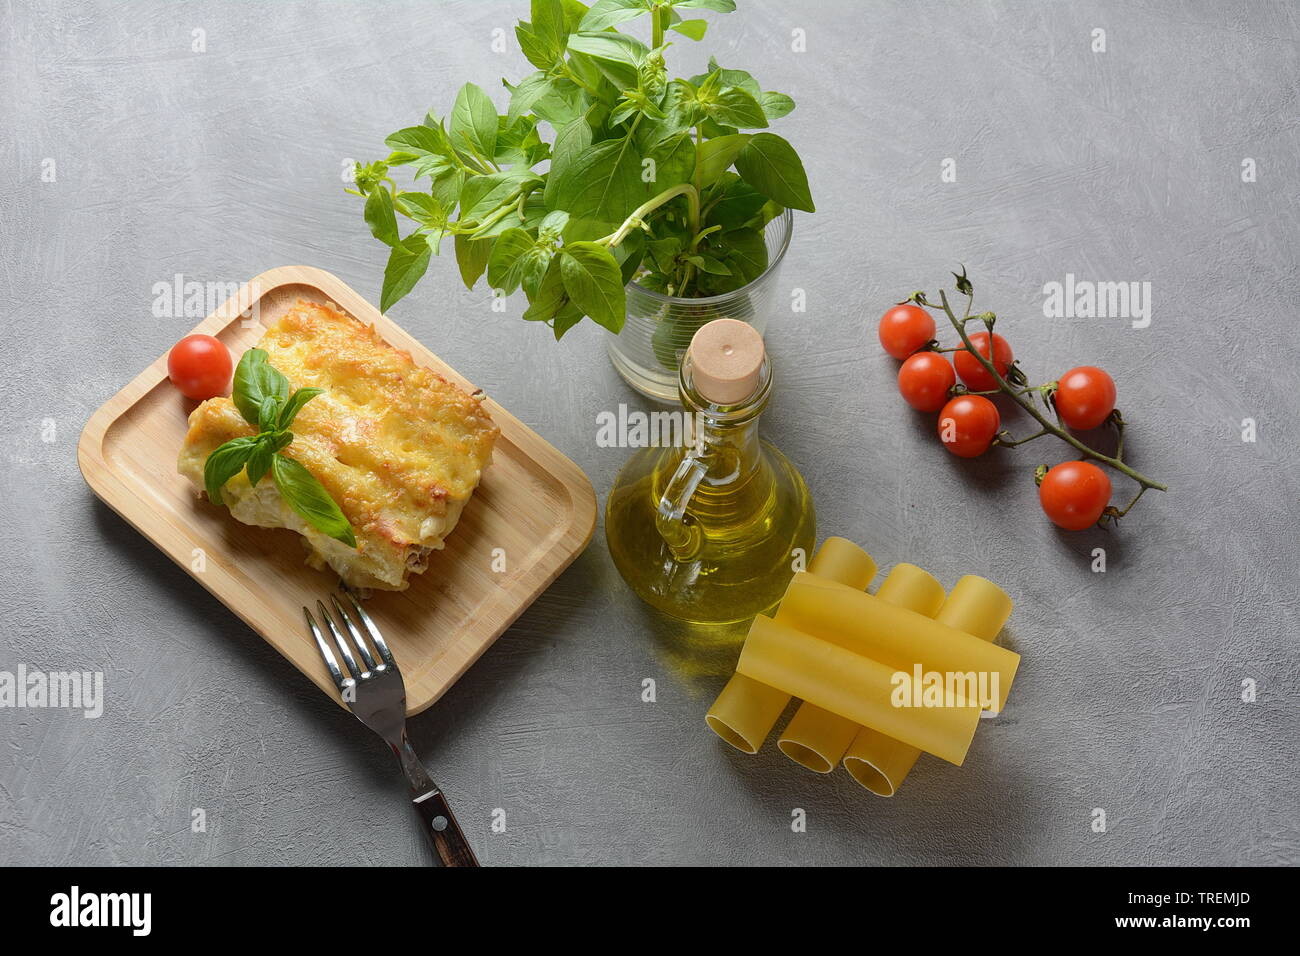 Cannelloni pasta stuffed with spinach, mushrooms,ricotta and sauce bechamel. Italian cuisine. Traditional food for Shavuot Jewish holiday - Stock Image